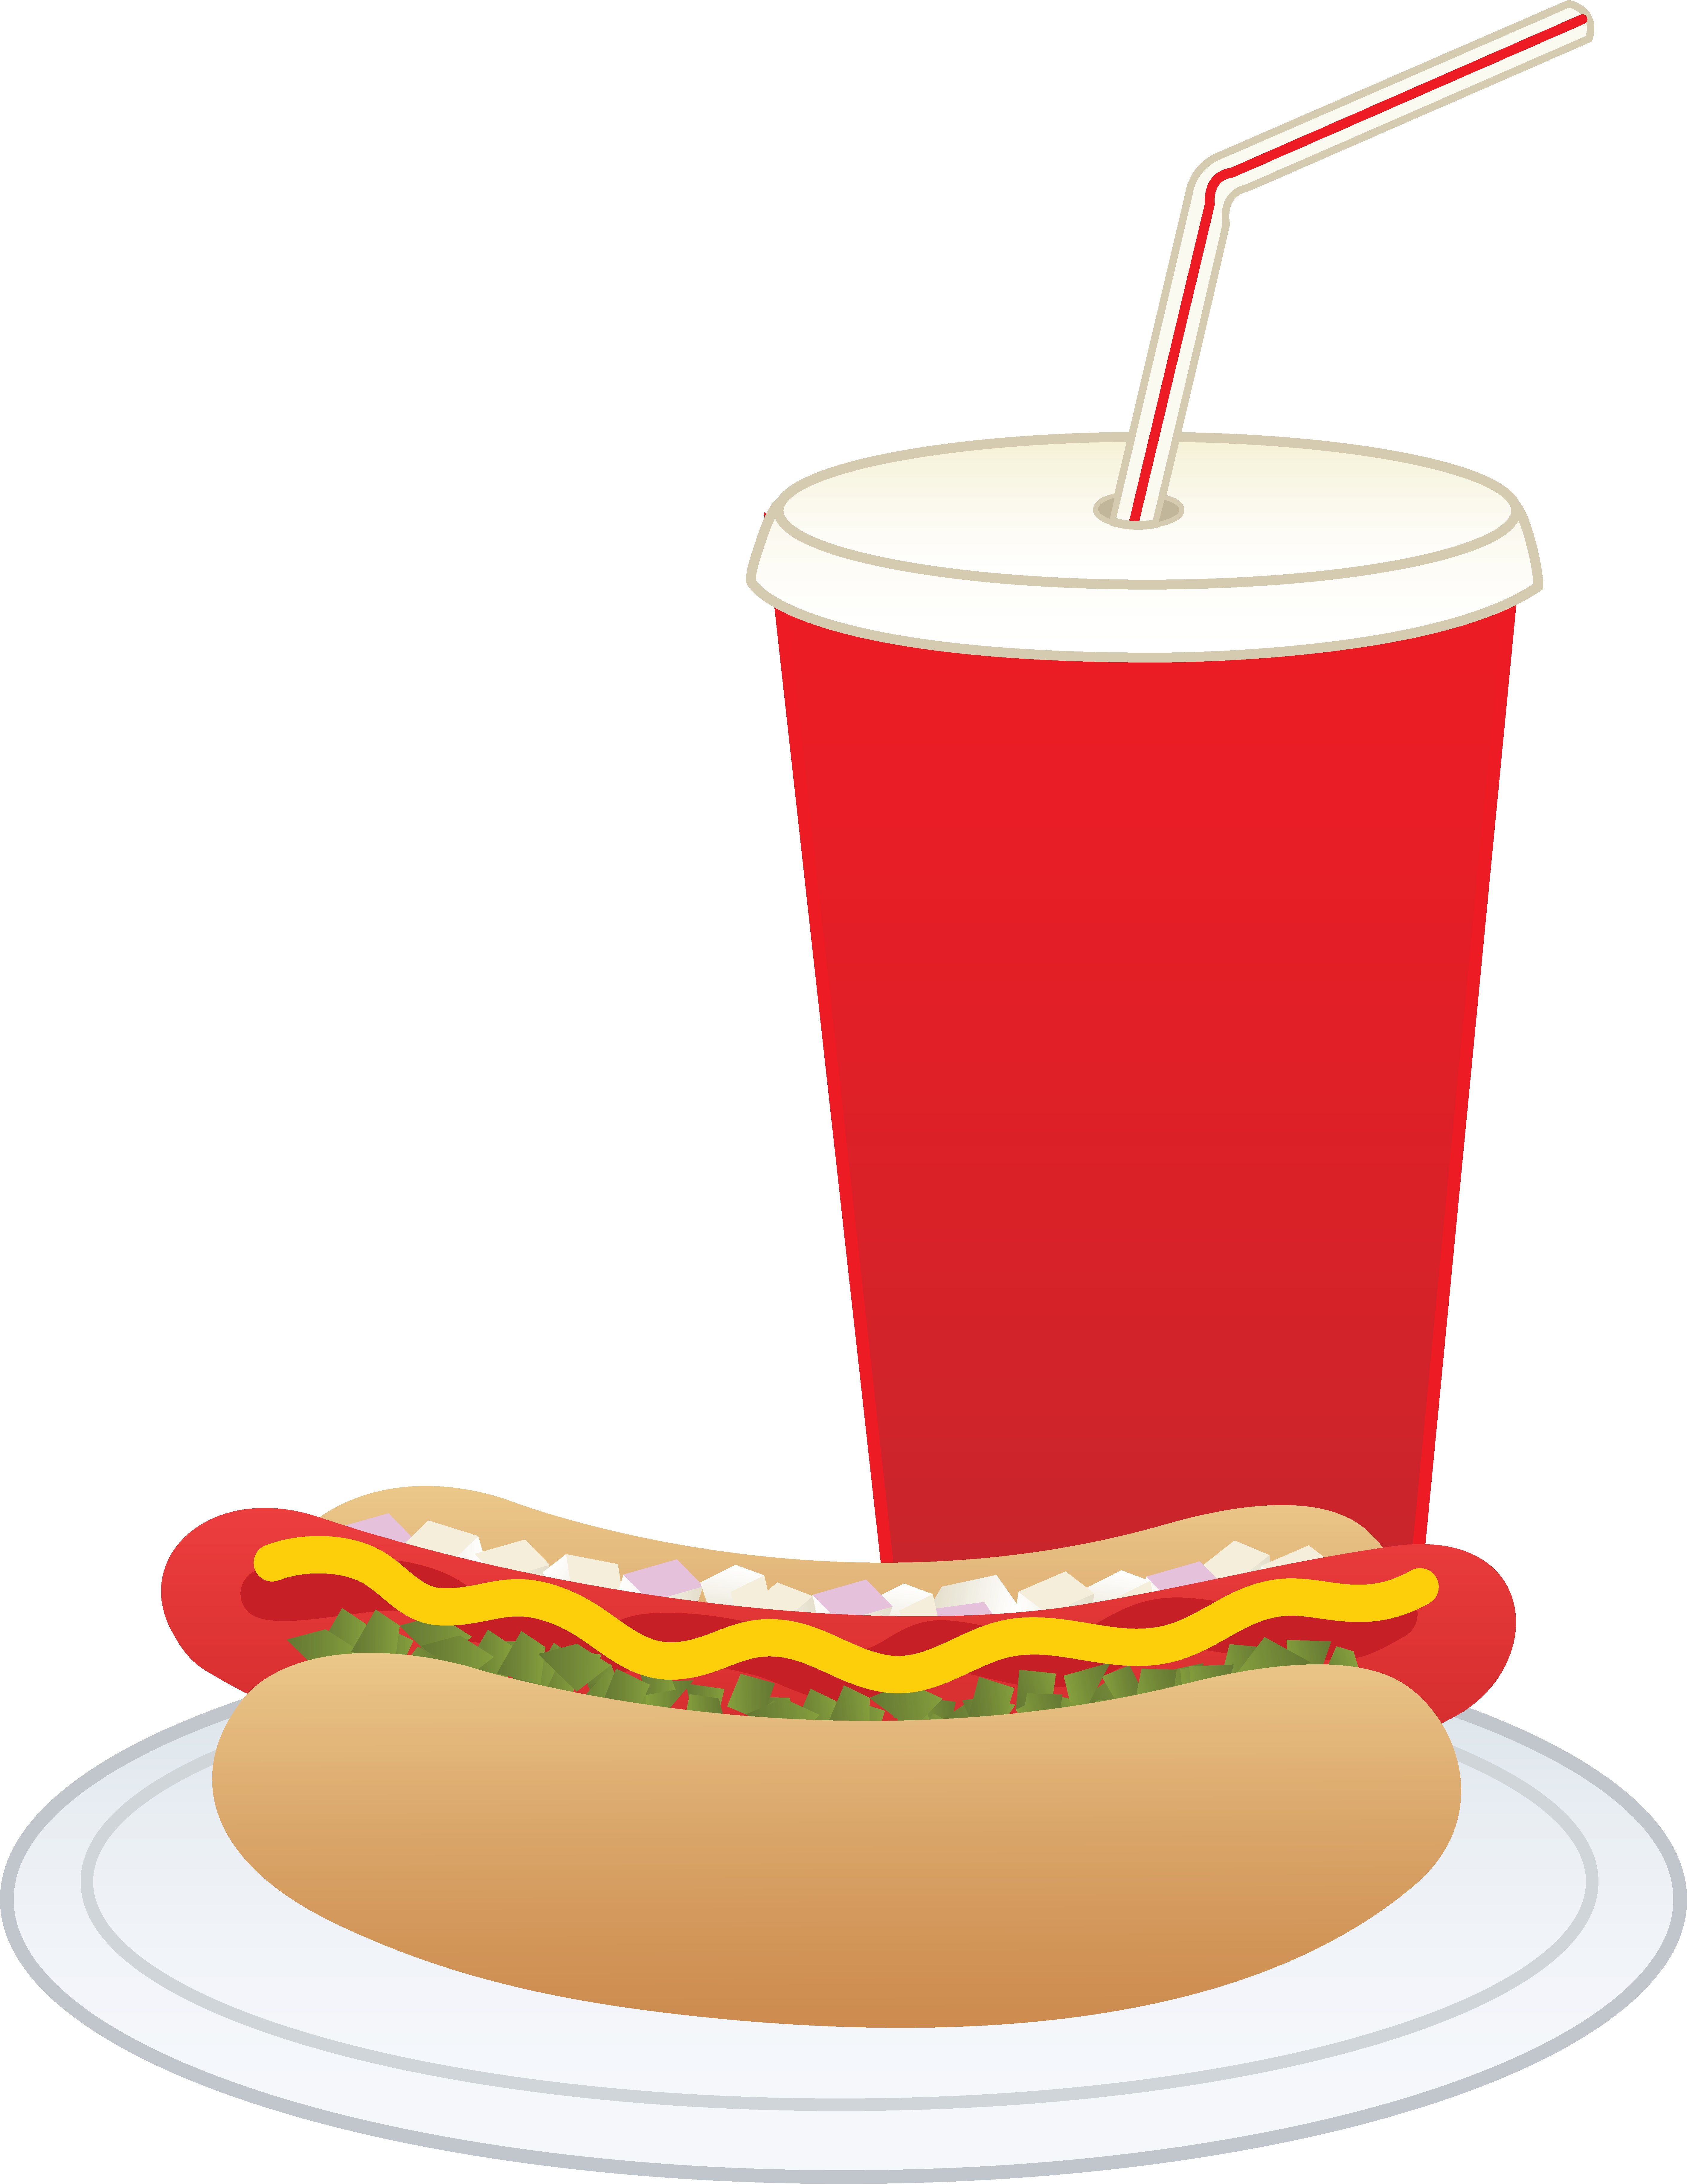 Hot dog and soft. Foods clipart soda